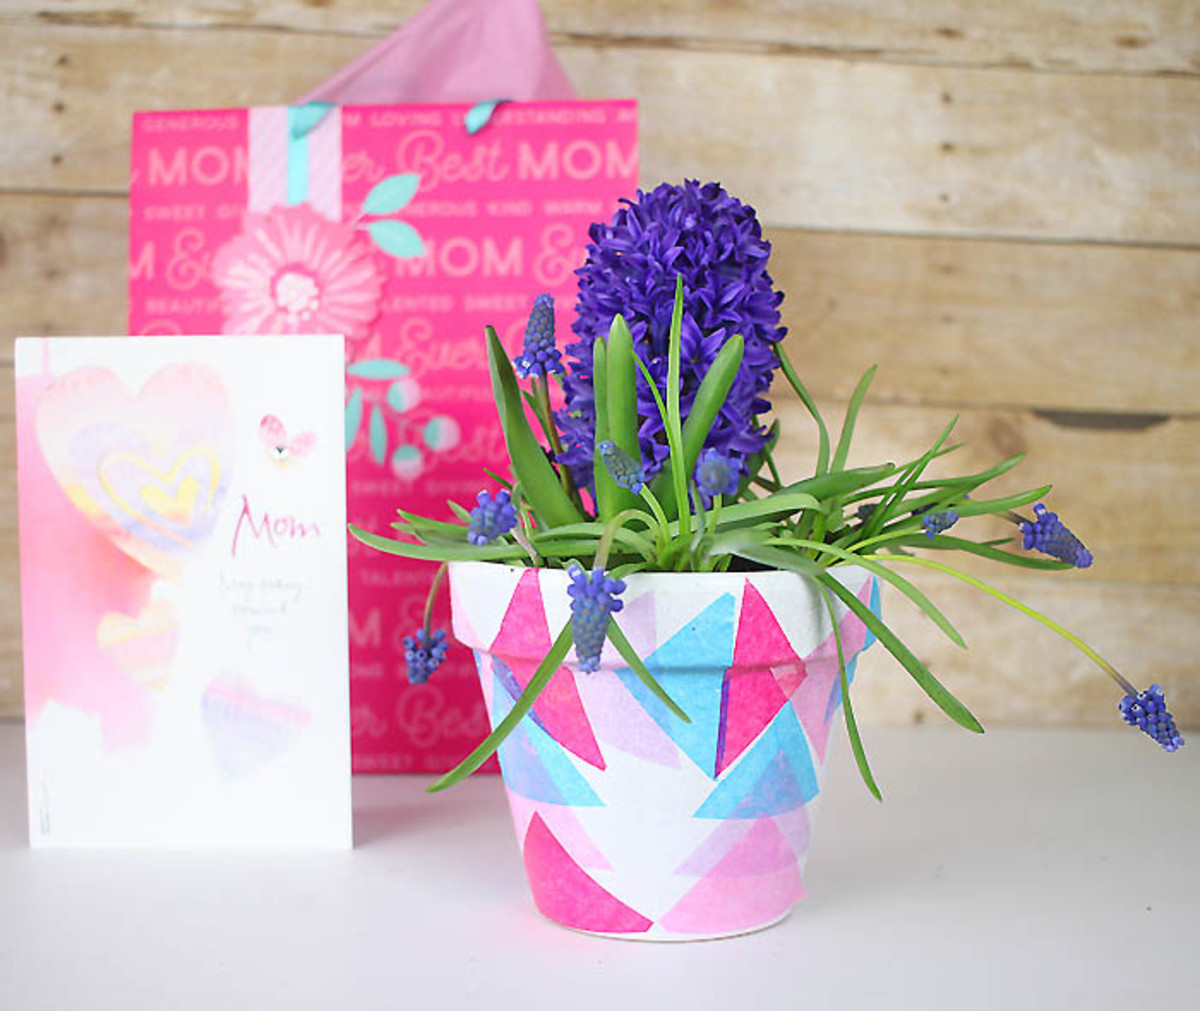 Decoupage Flower Pots DIY from gina-michele.com